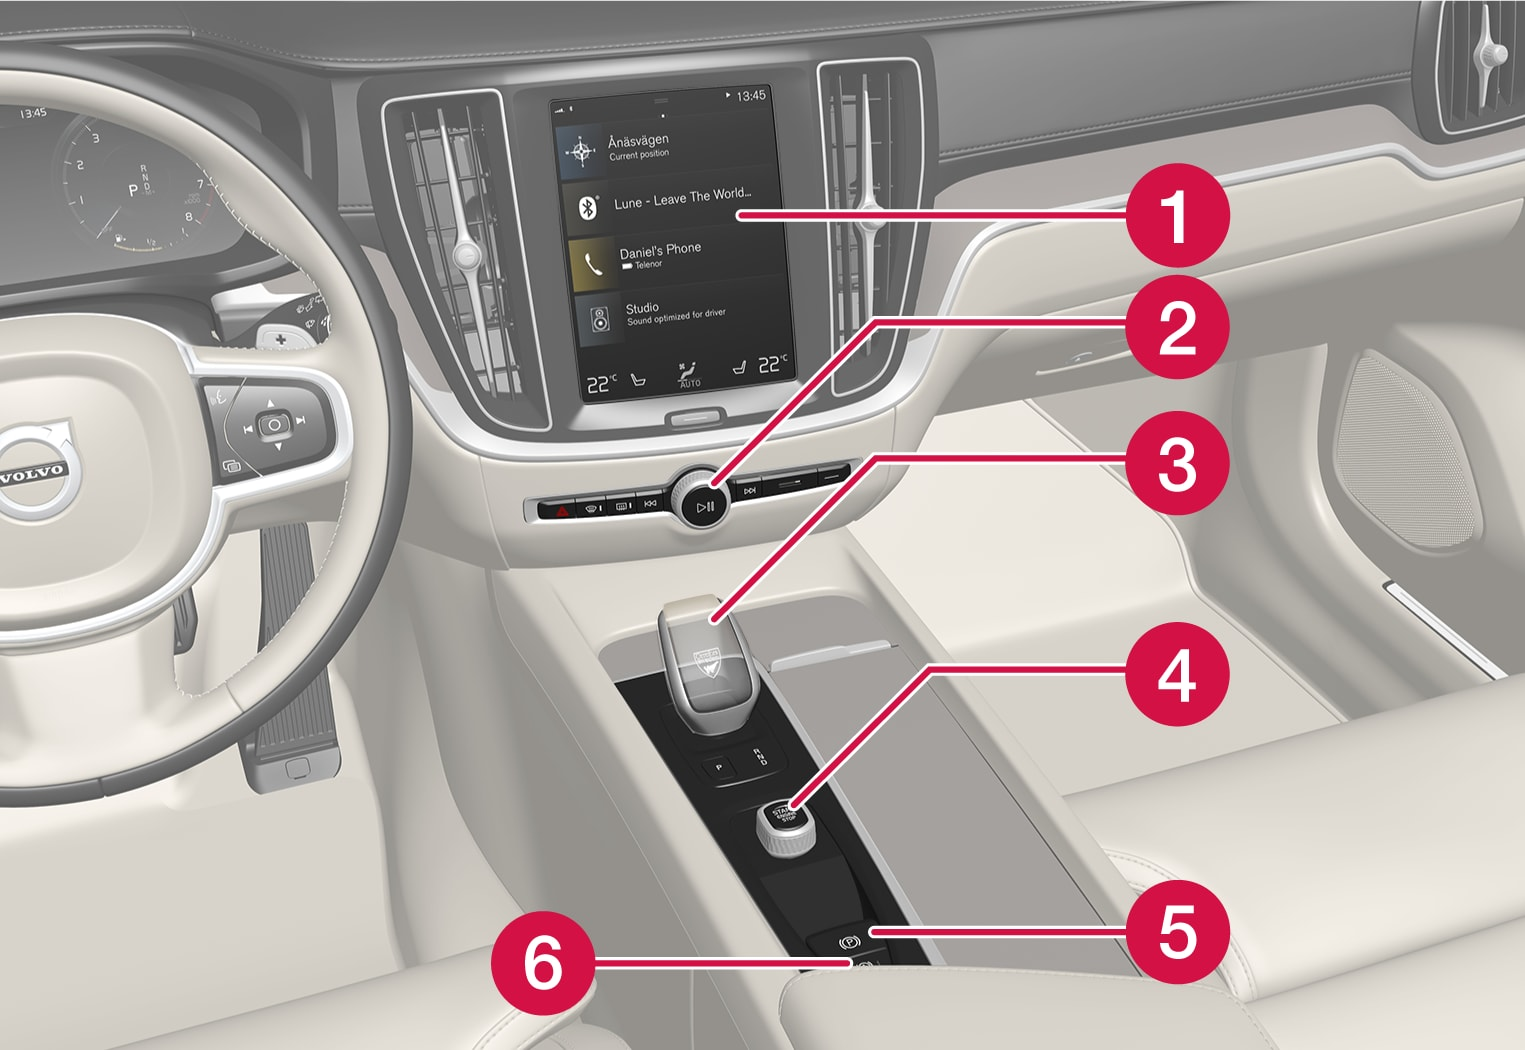 P5-21w22-S/V/XC60-Controls in tunnel and center console, left hand drive